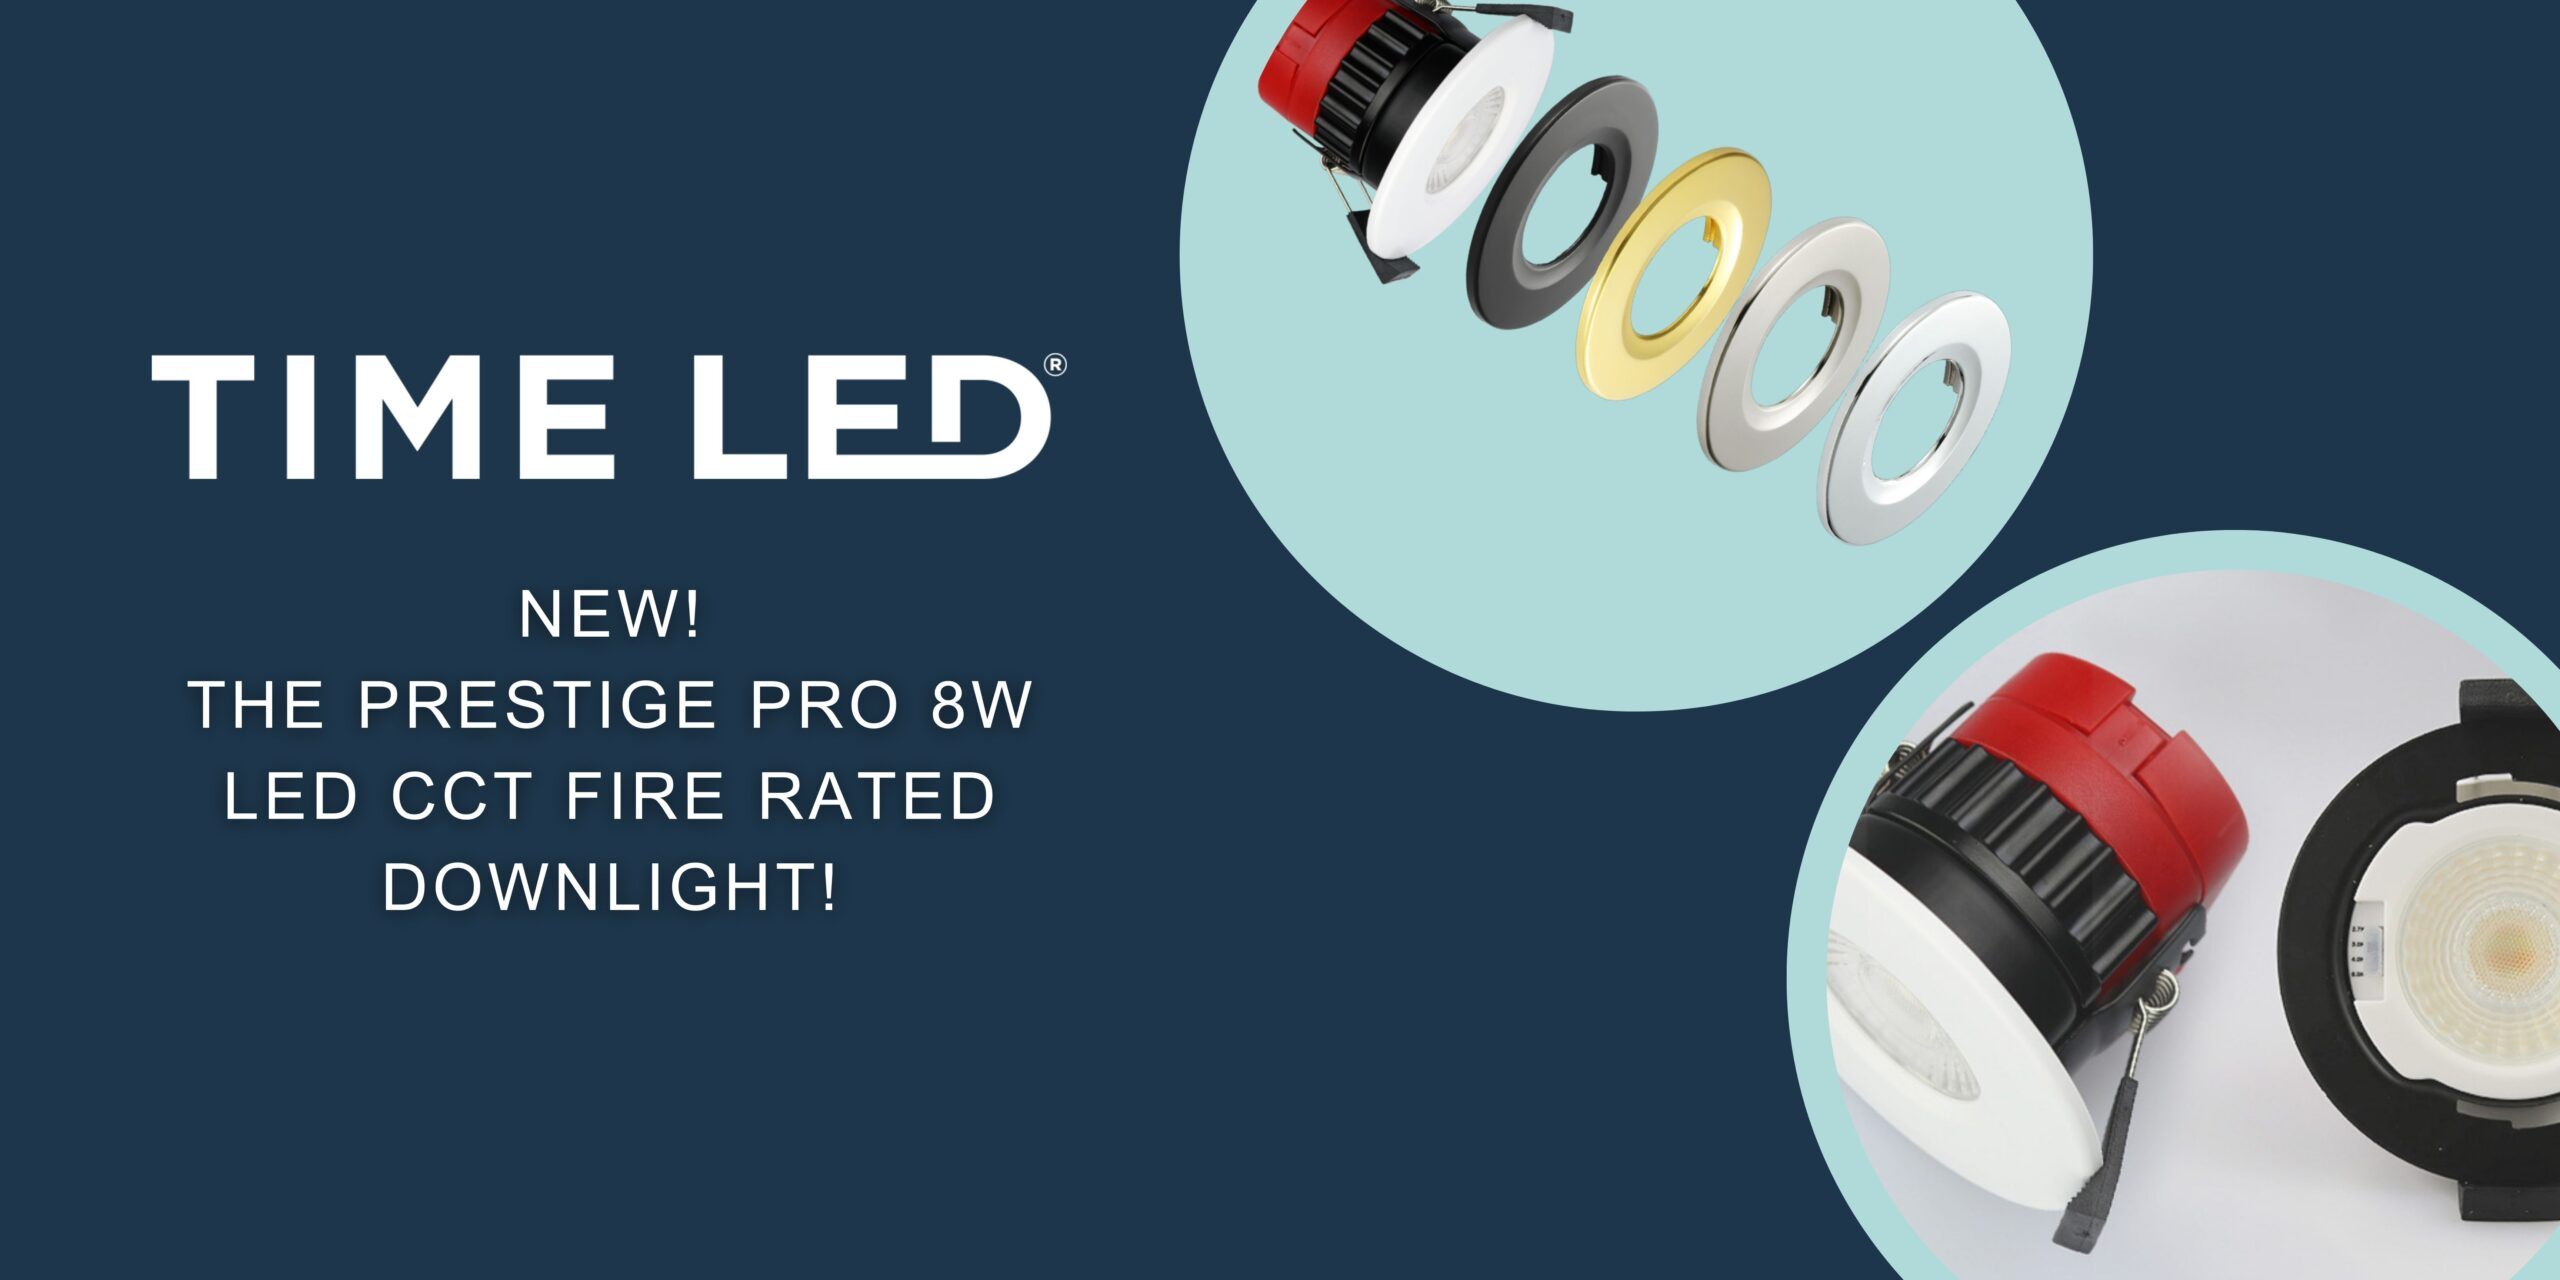 NEW IN TIME LED! The Prestige Pro 8W LED CCT Fire Rated Downlight!